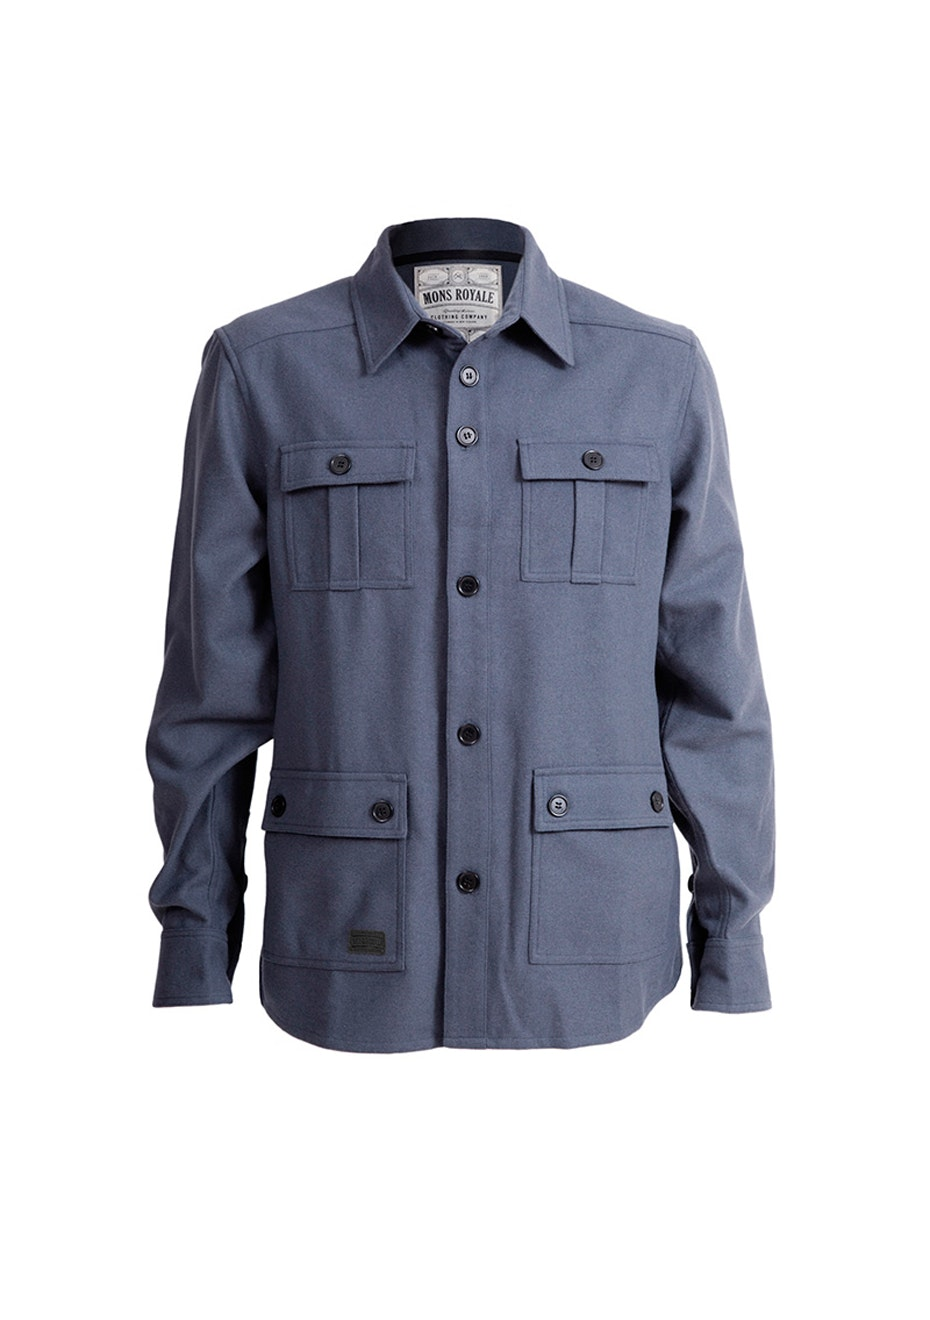 Mons Royale - Mountain Shirt - Charcoal